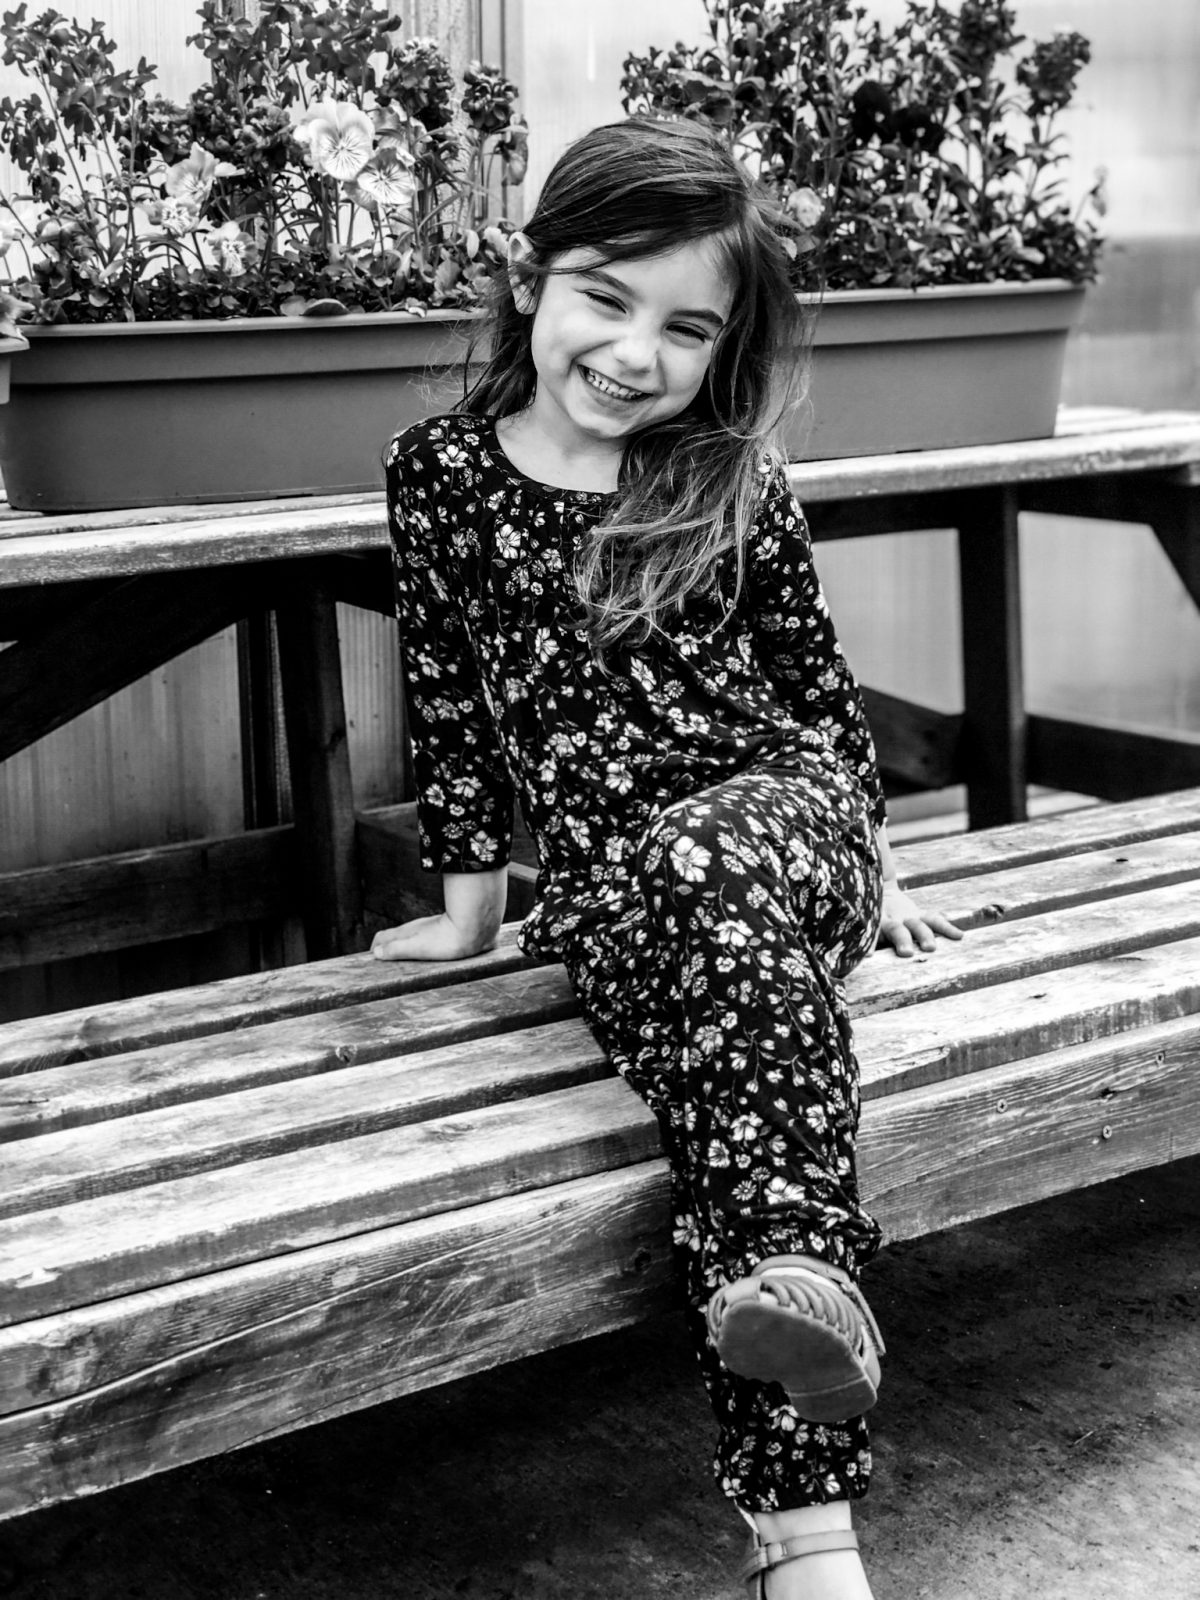 smiling little girl sitting on a bench in black and white